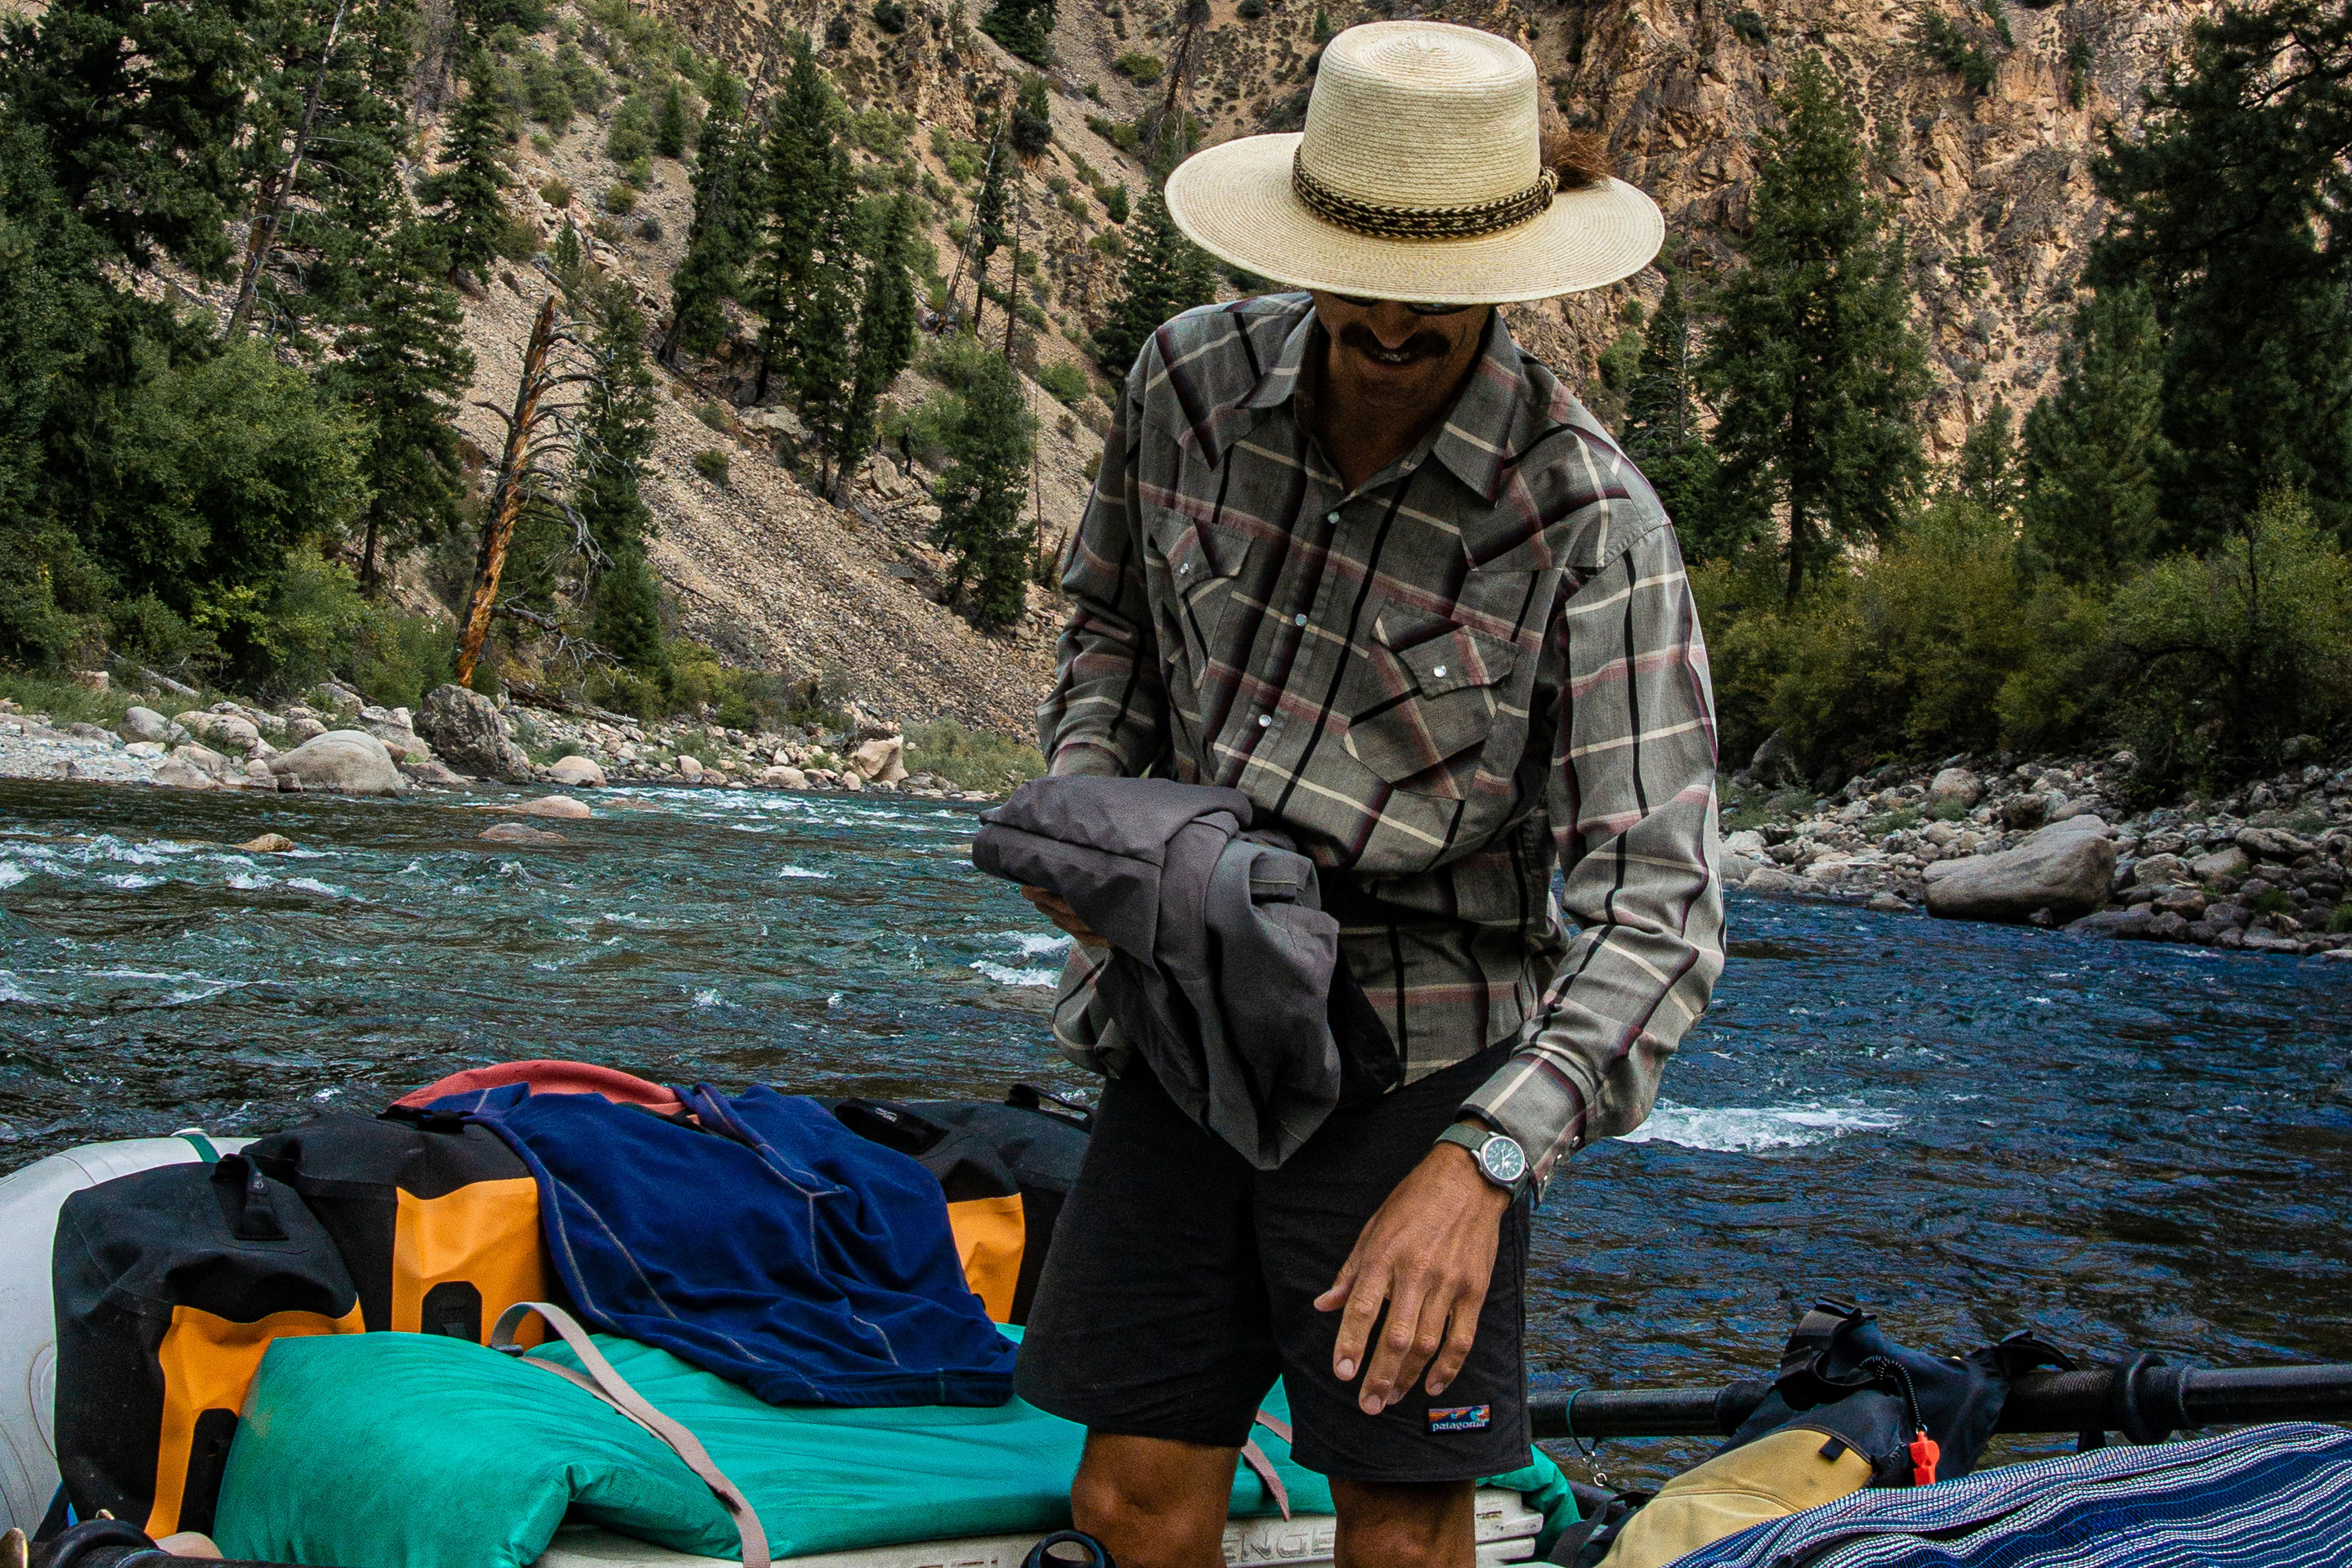 River raft guide clothes outfit